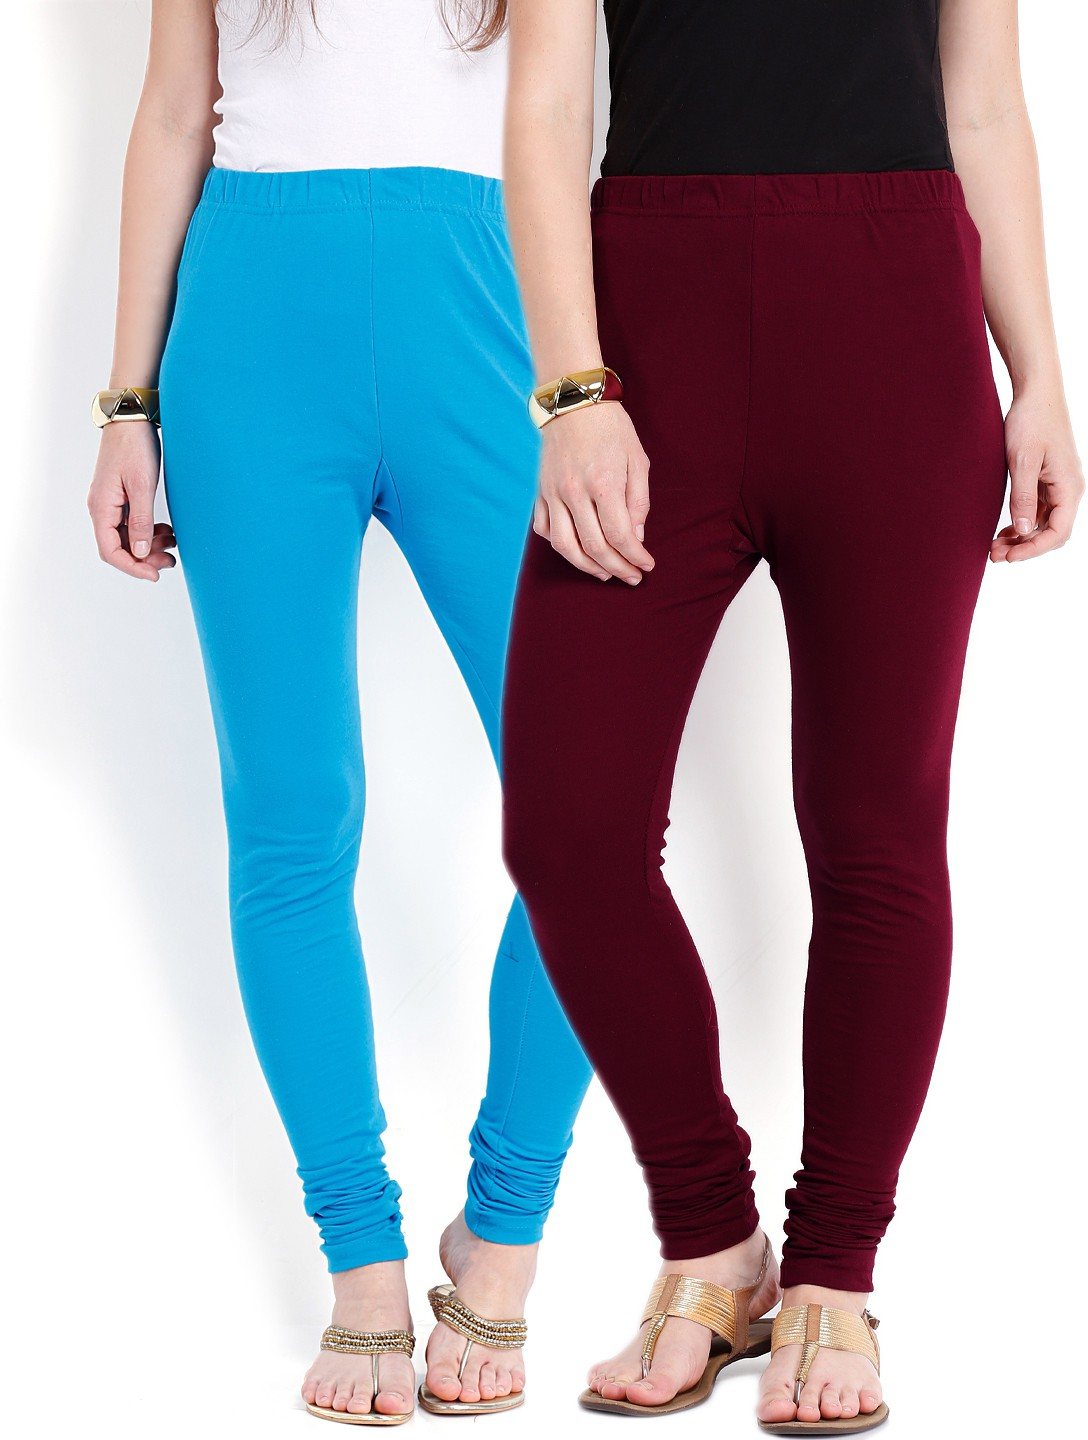 Ten on Ten Womens Blue, Maroon Leggings(Pack of 2)